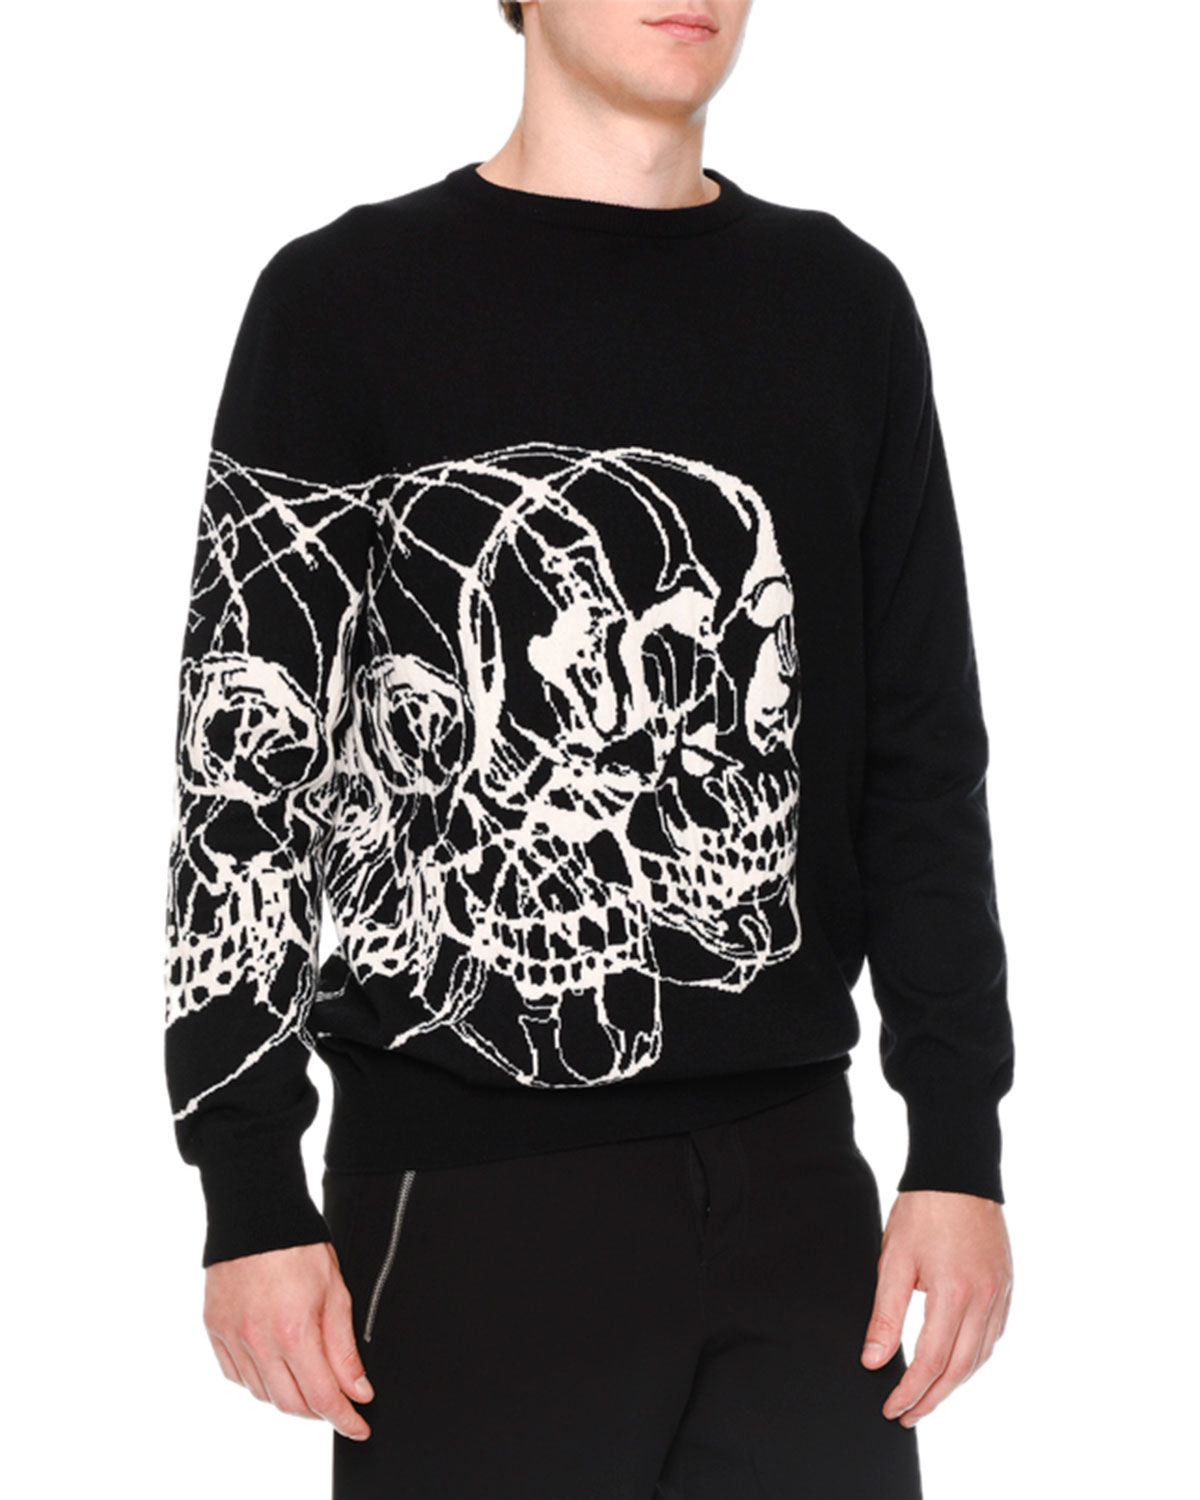 skull print sweatshirt - Red Alexander McQueen Clearance Pay With Paypal Clearance Affordable 8YJrZ2GwRI